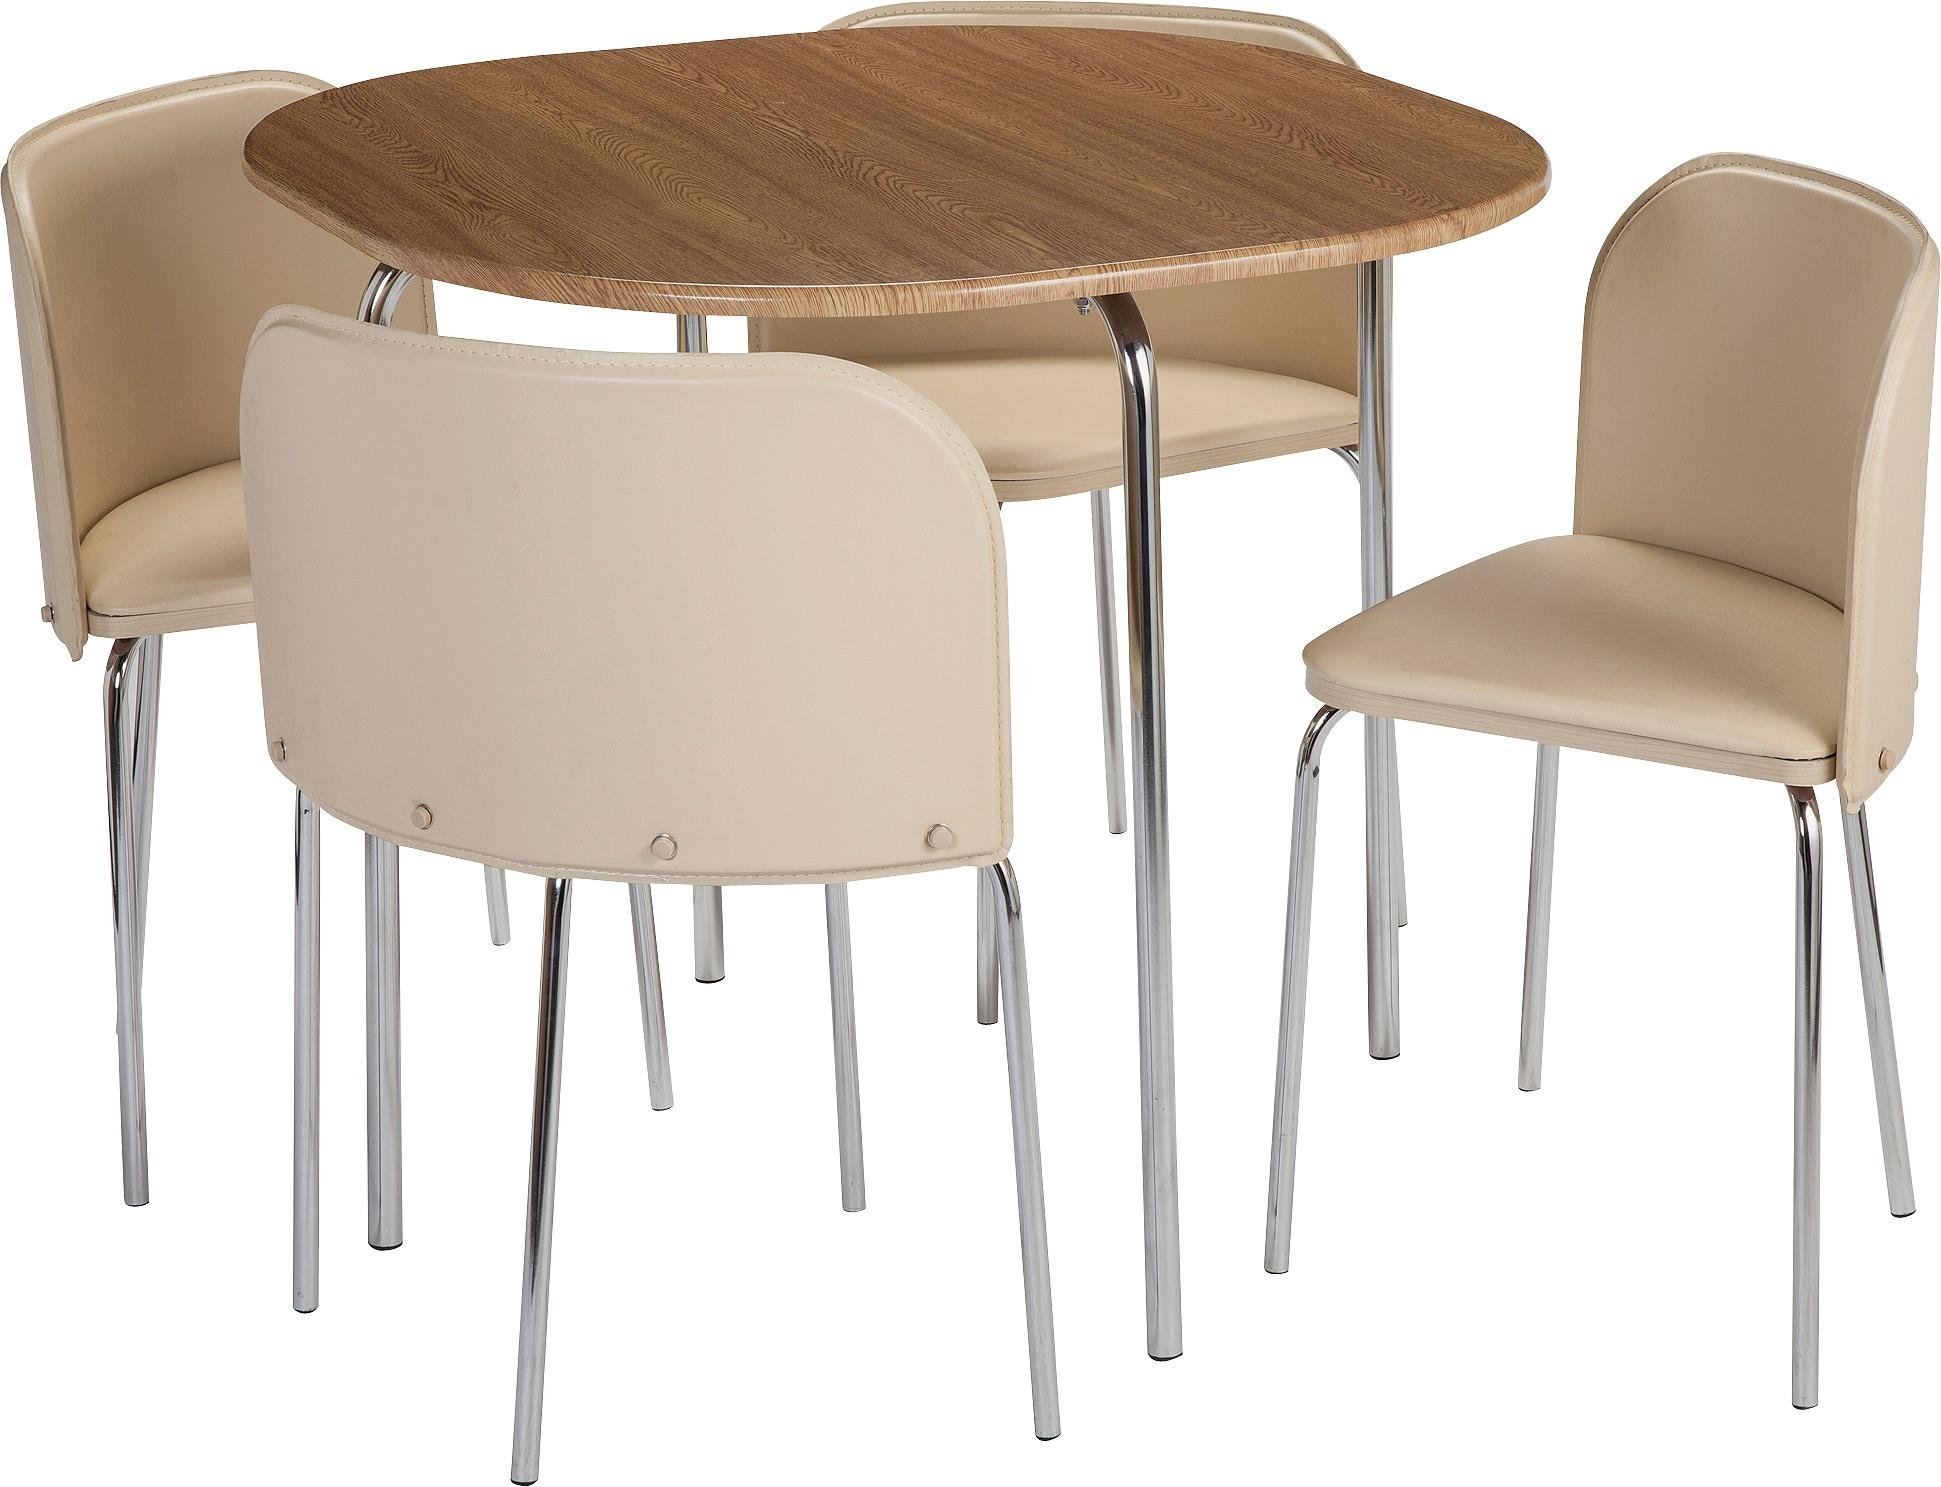 Buy Hygena Amparo Oak Effect Dining Table   Chairs - Cream at